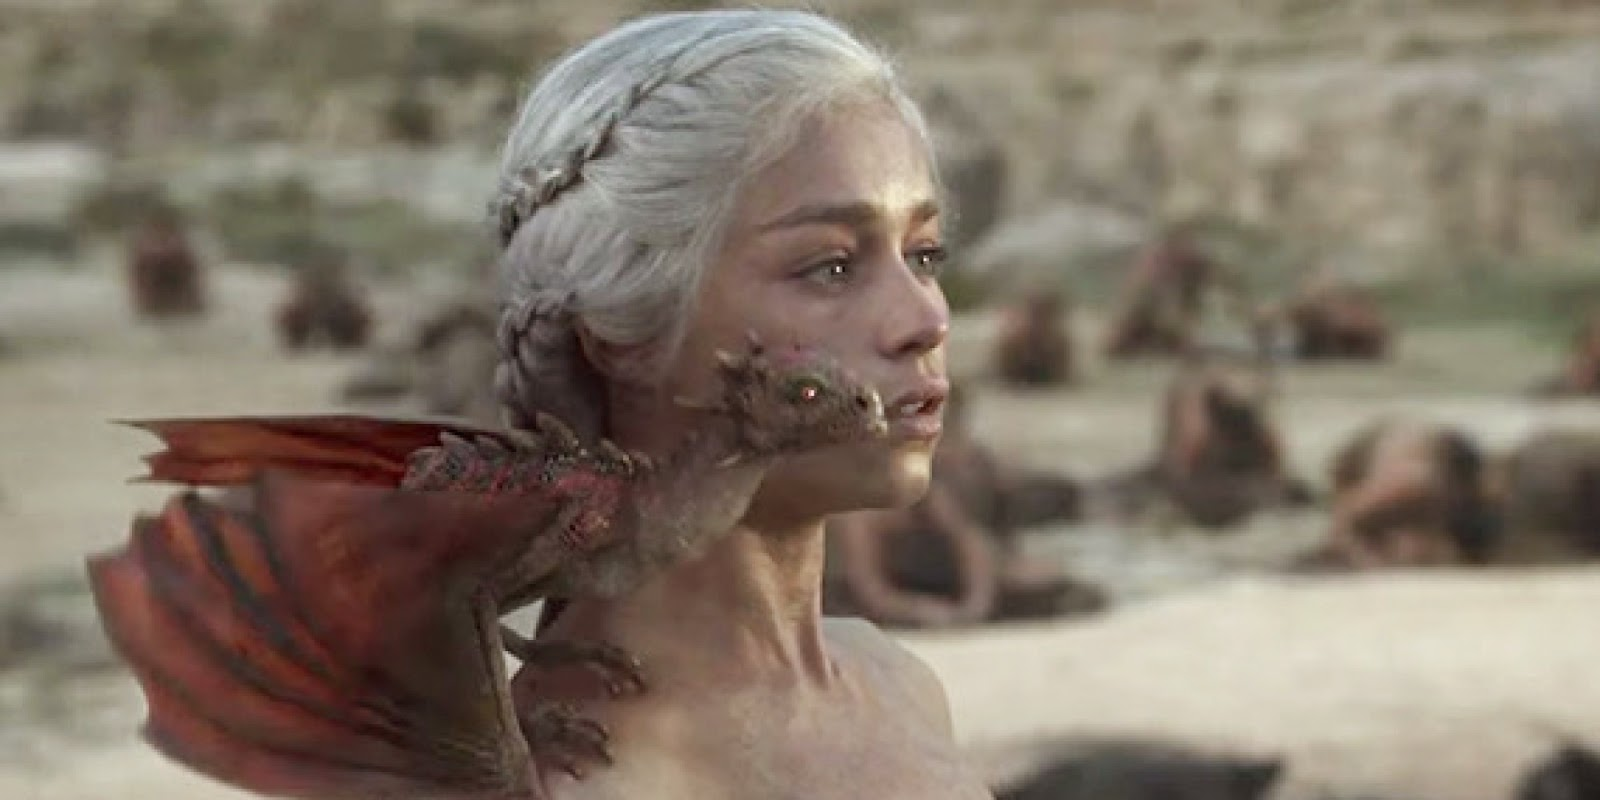 queen of game of thrones name